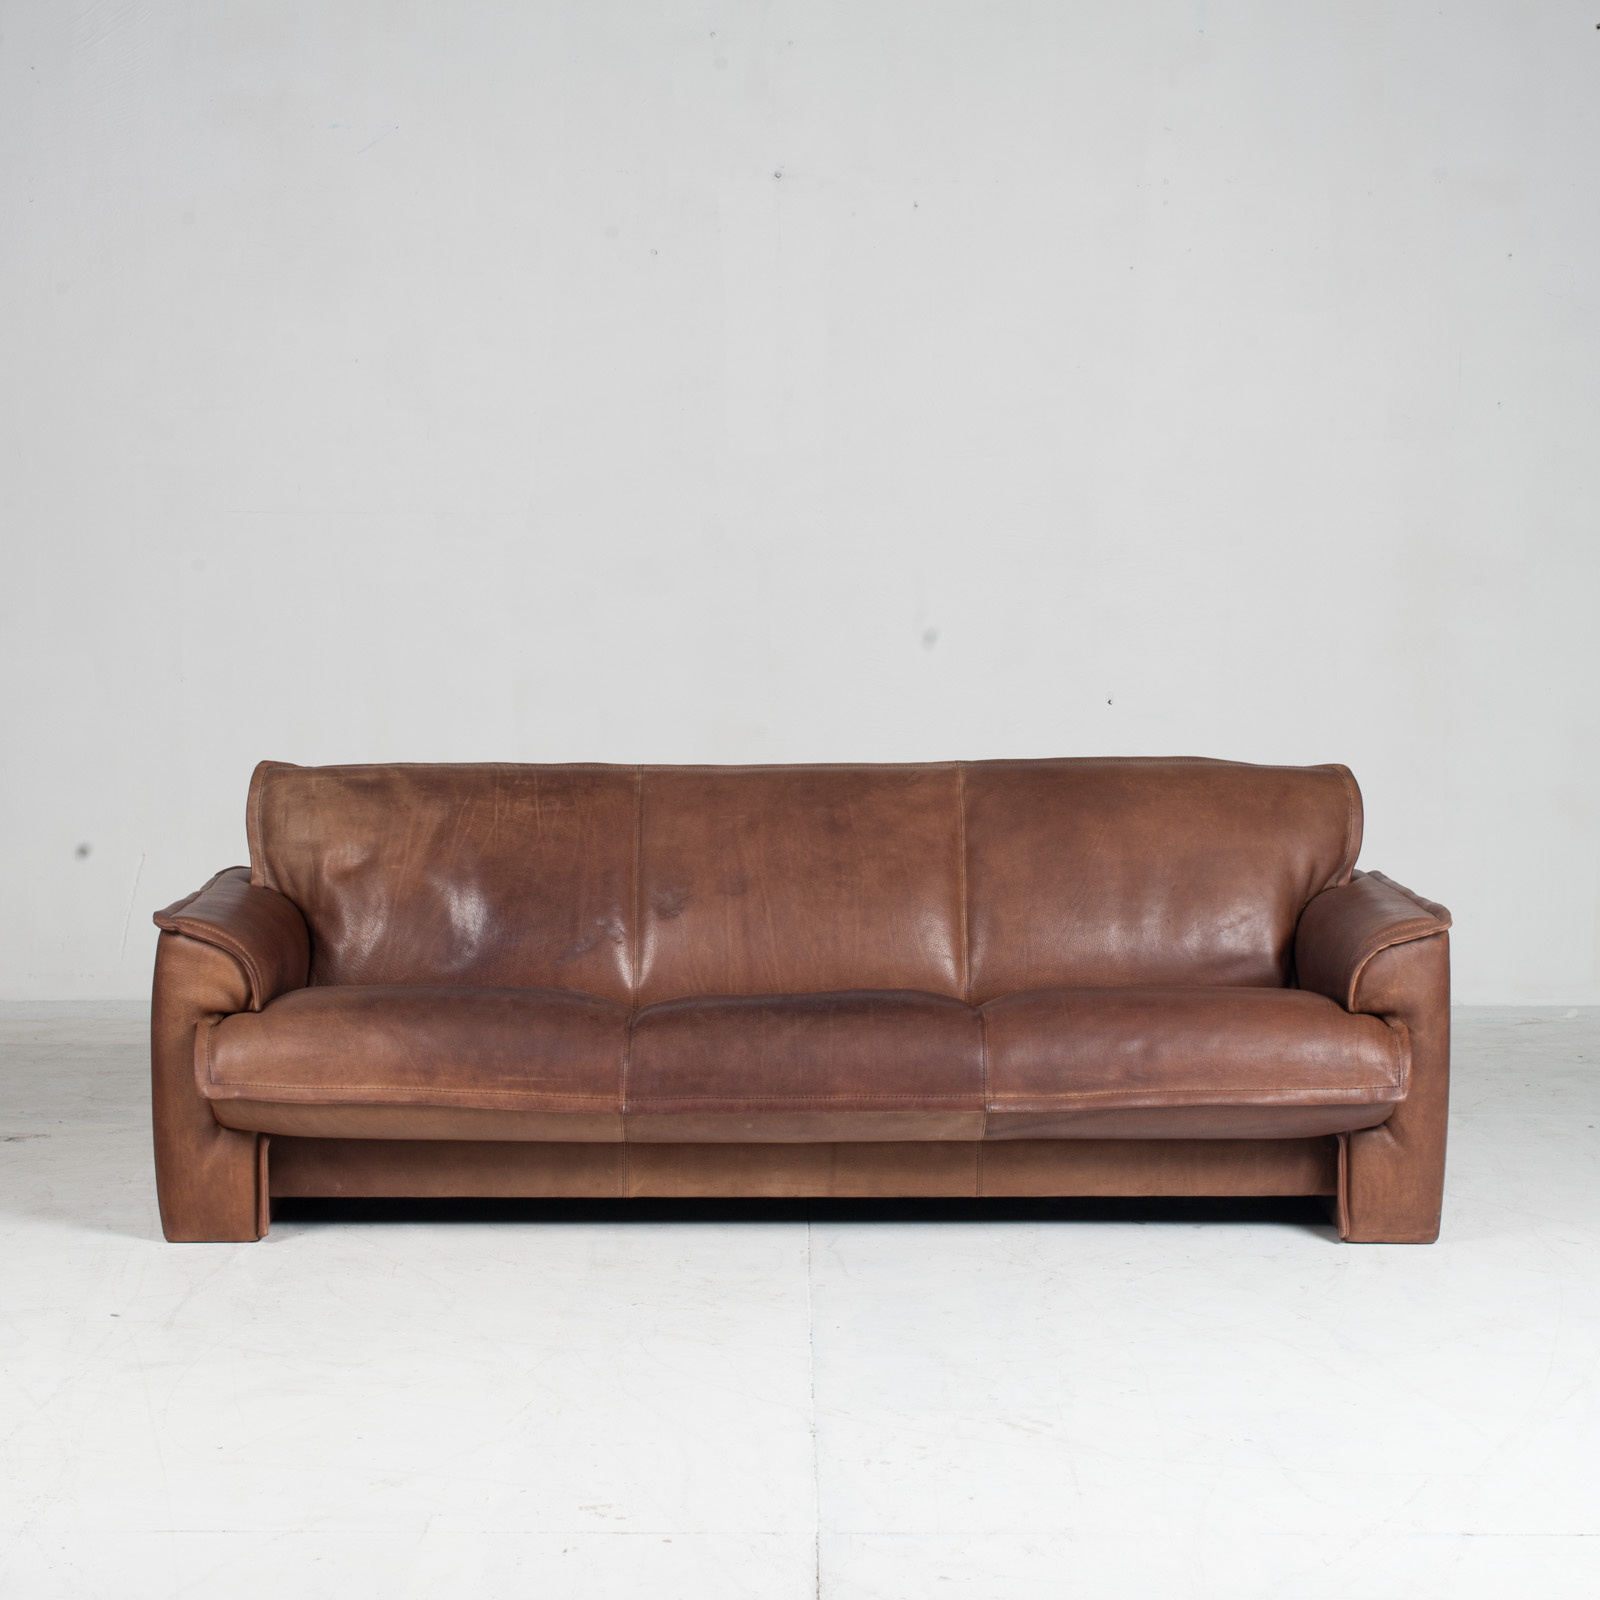 3 Seat Sofa By De Sede In Tan Neck Leather 1960s Denmark 02